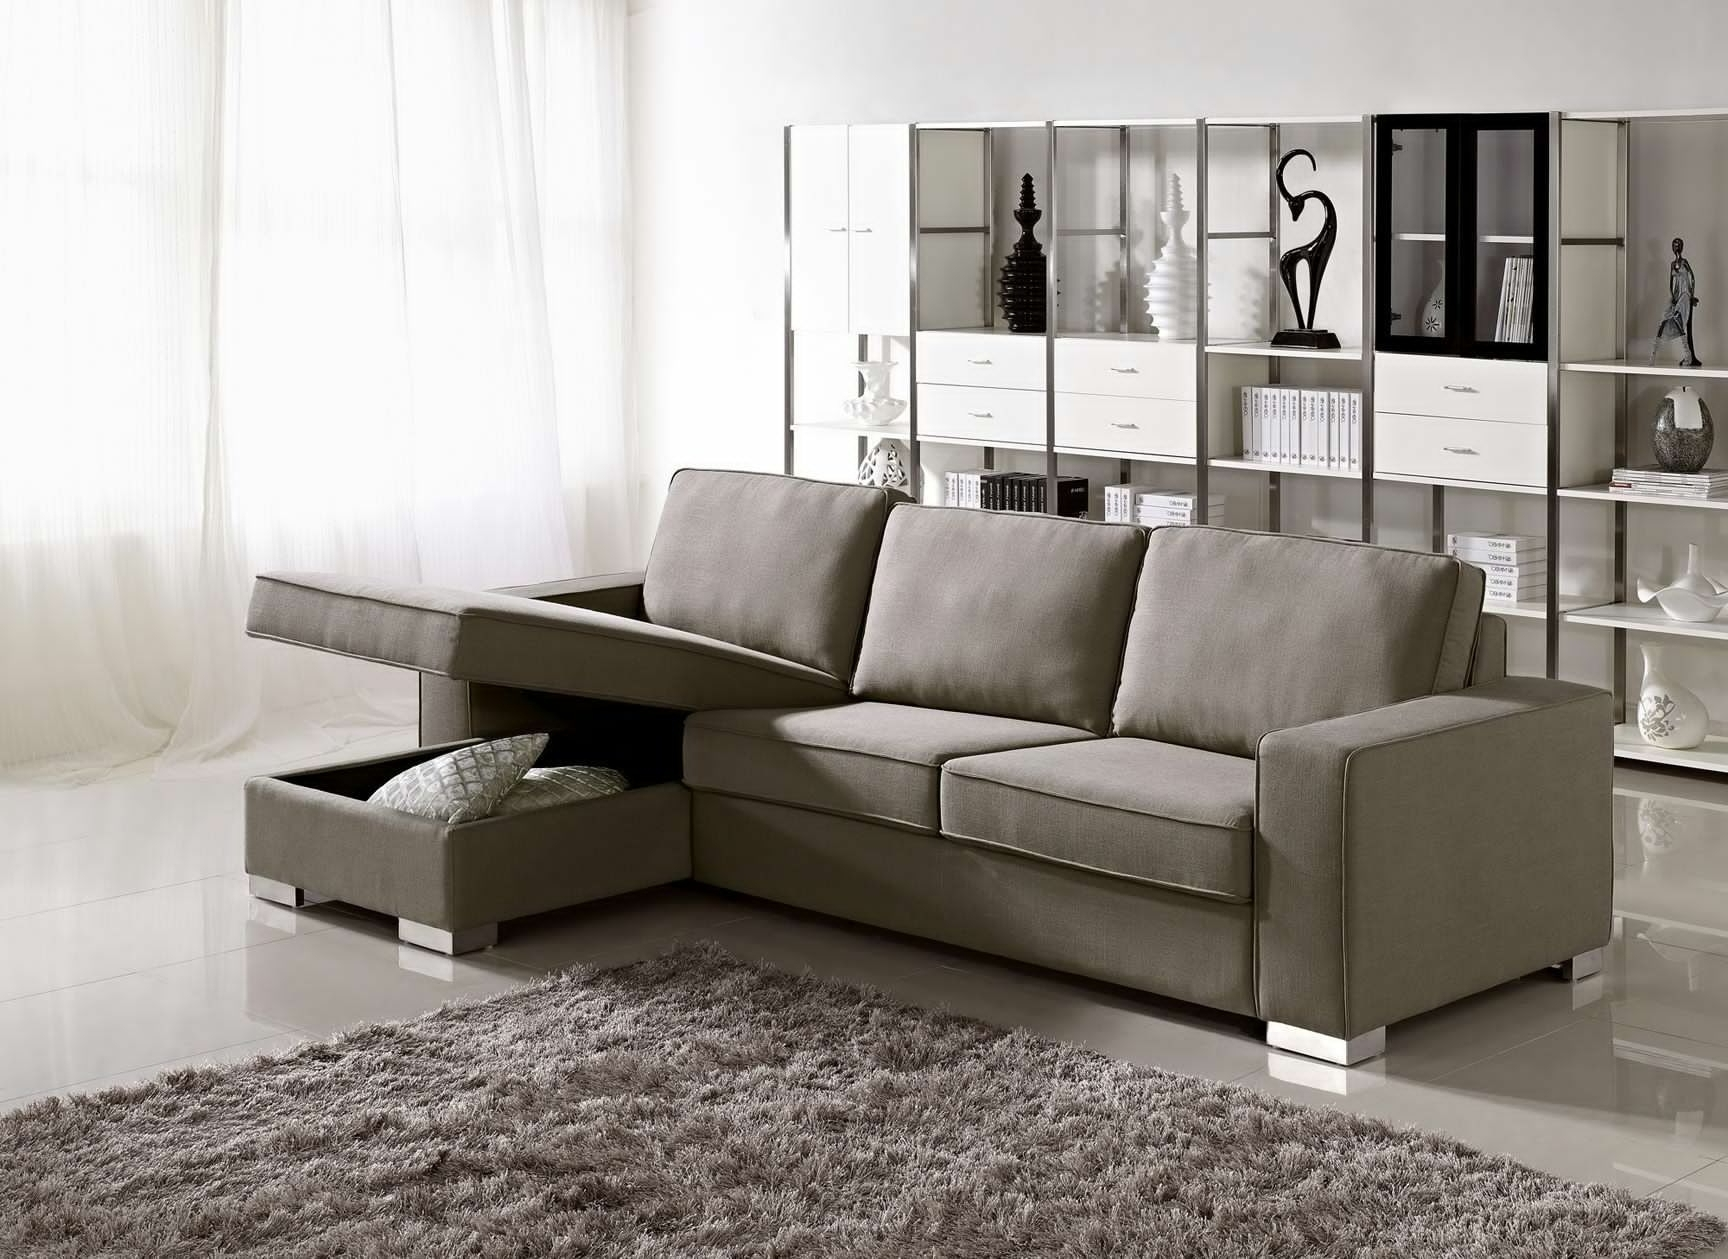 Well Liked Sectional Sofas For Condos In Sectional Sofa Design: Apartment Size Sectional Sofa With Chaise (View 14 of 15)